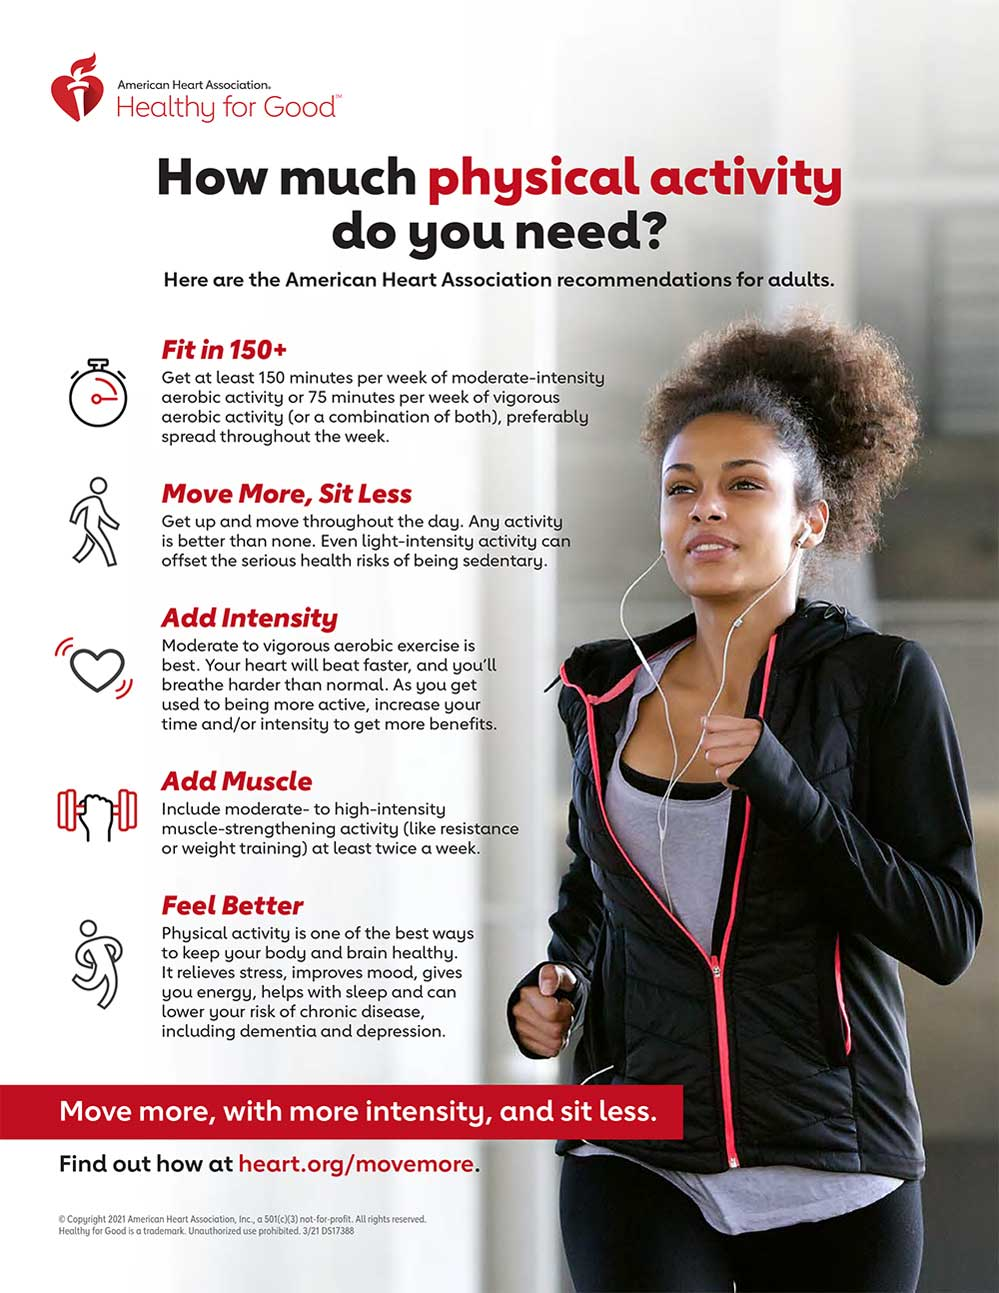 AHA Physical Activity Recommendations for Adults Infographic